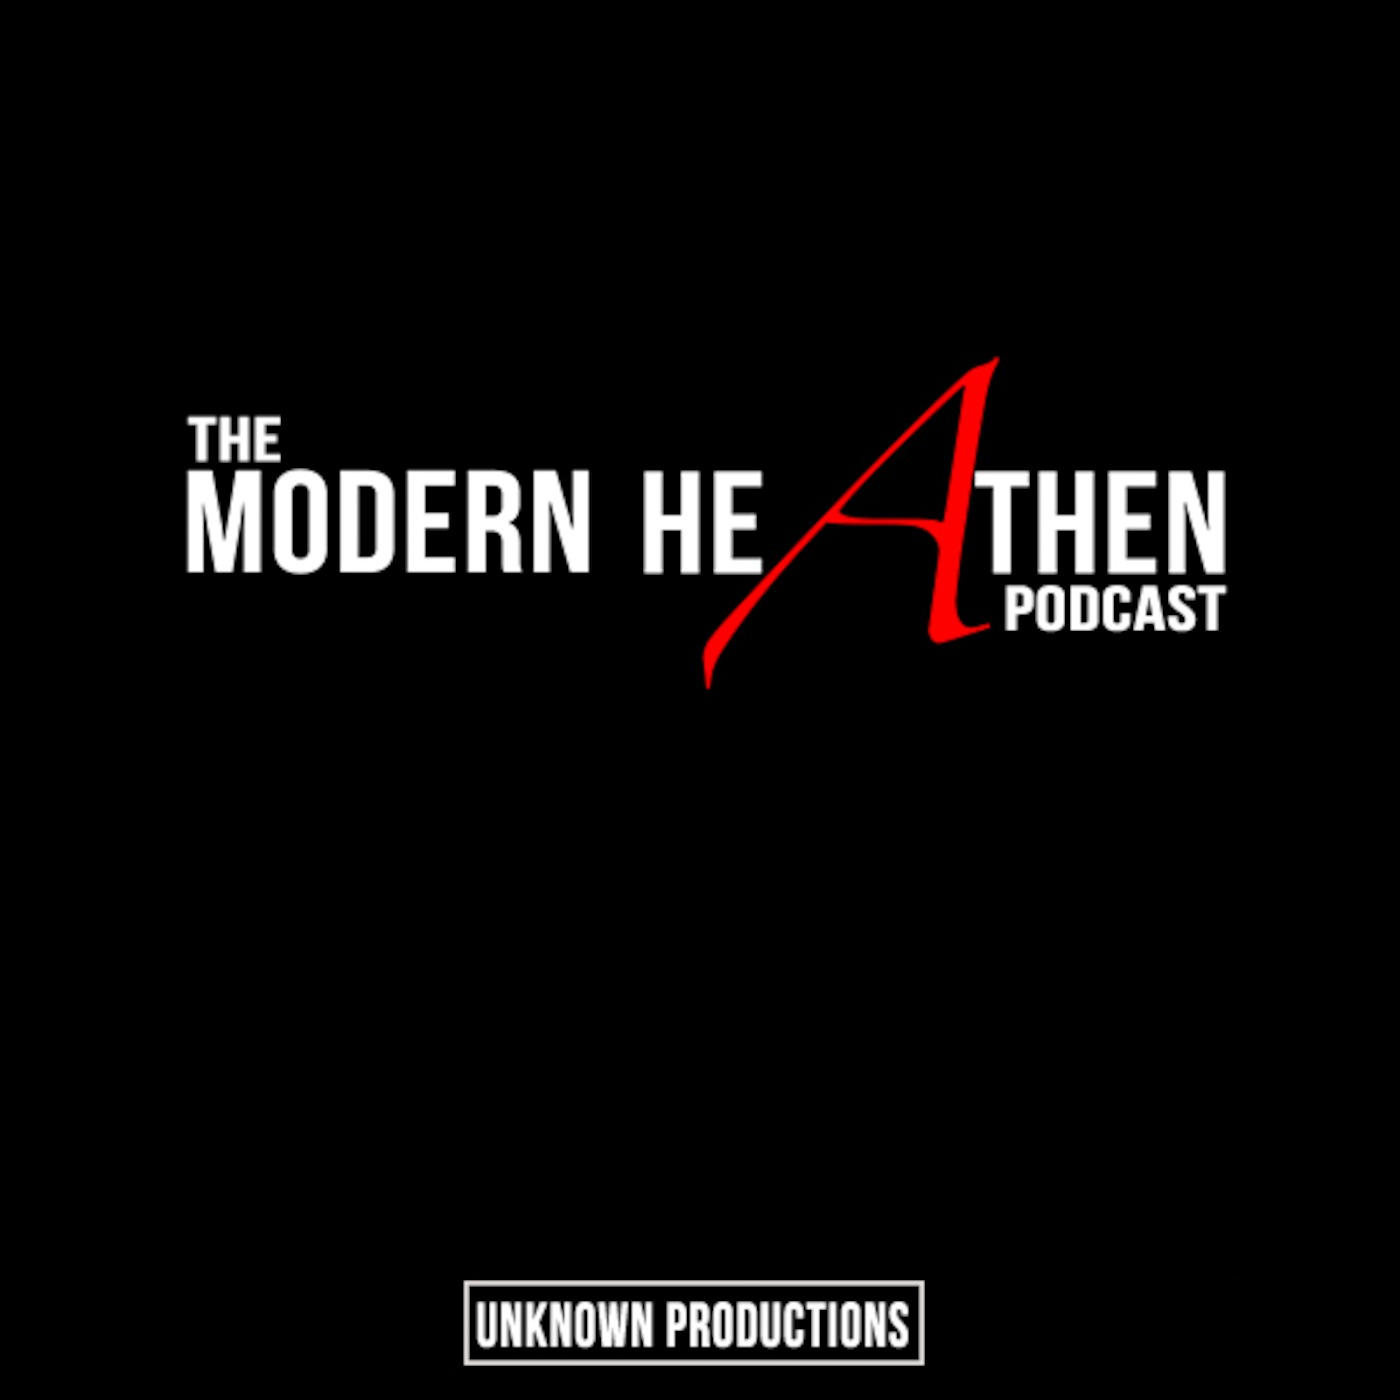 The Modern Heathen Podcast